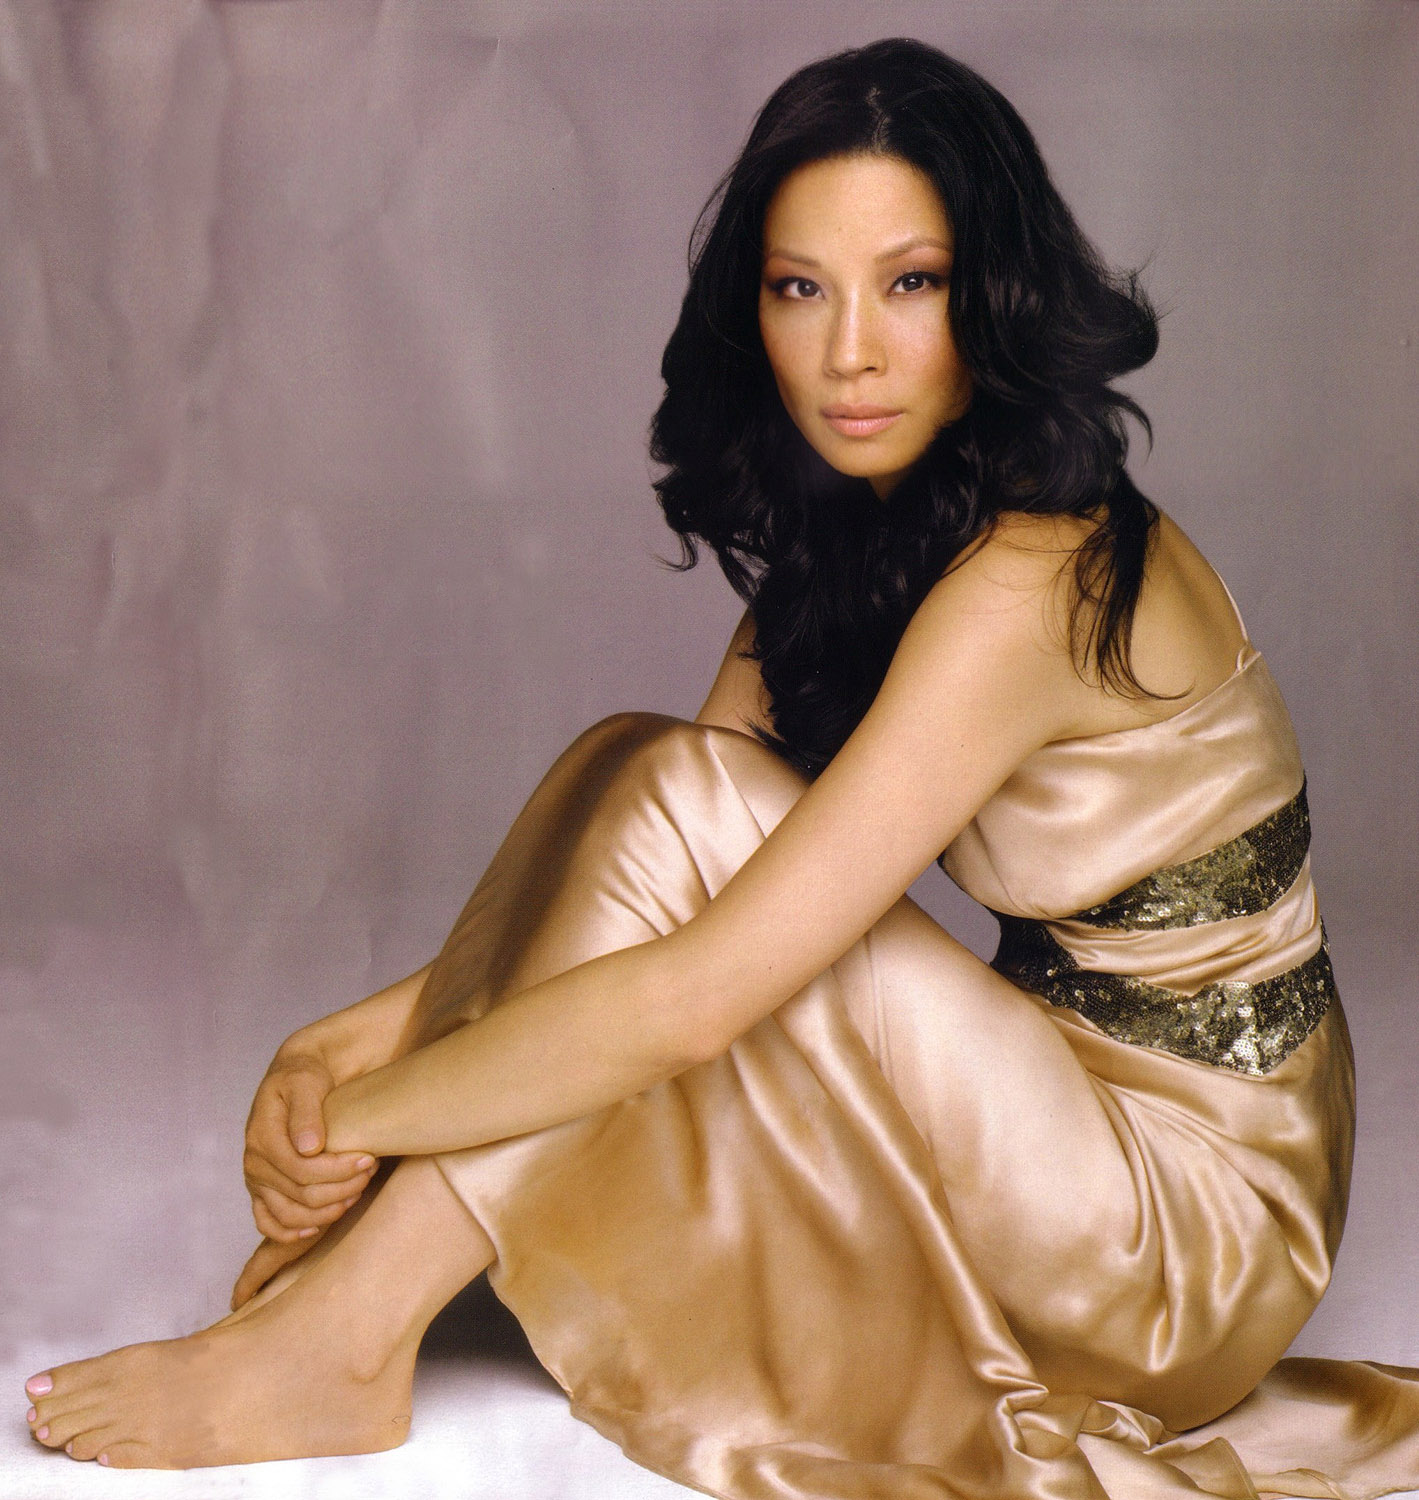 Lucy Liu Profile And Images/Photos 2012